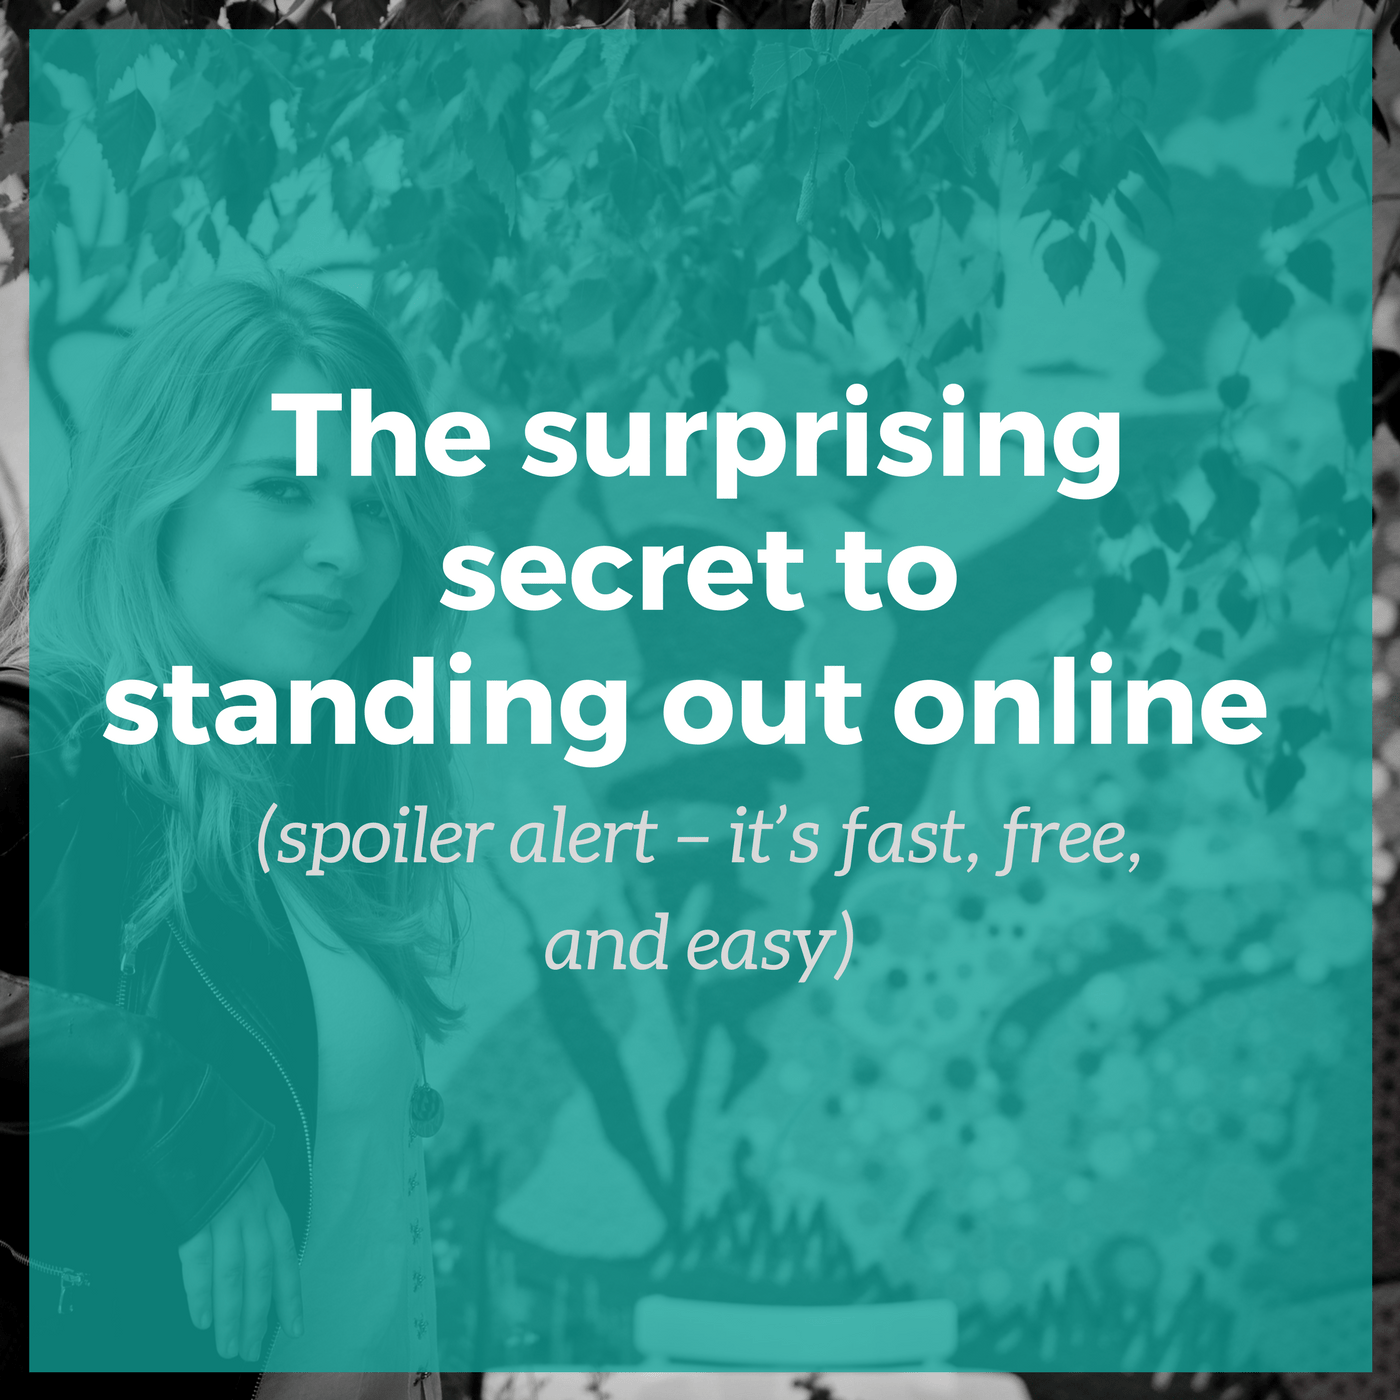 The surprising secret to standing out online